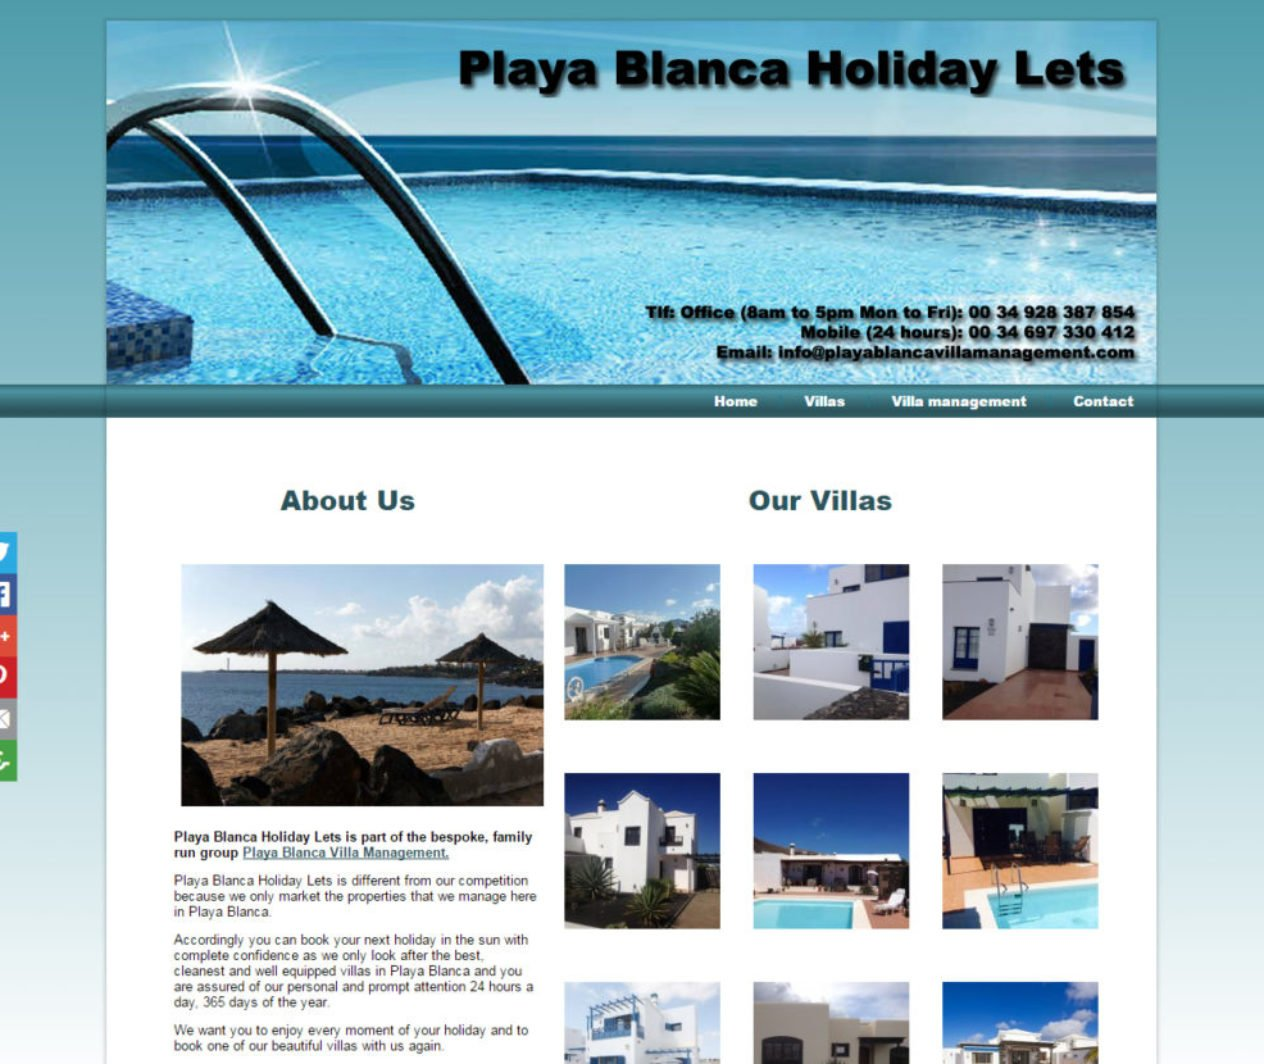 Playa Blanca Holiday Lets